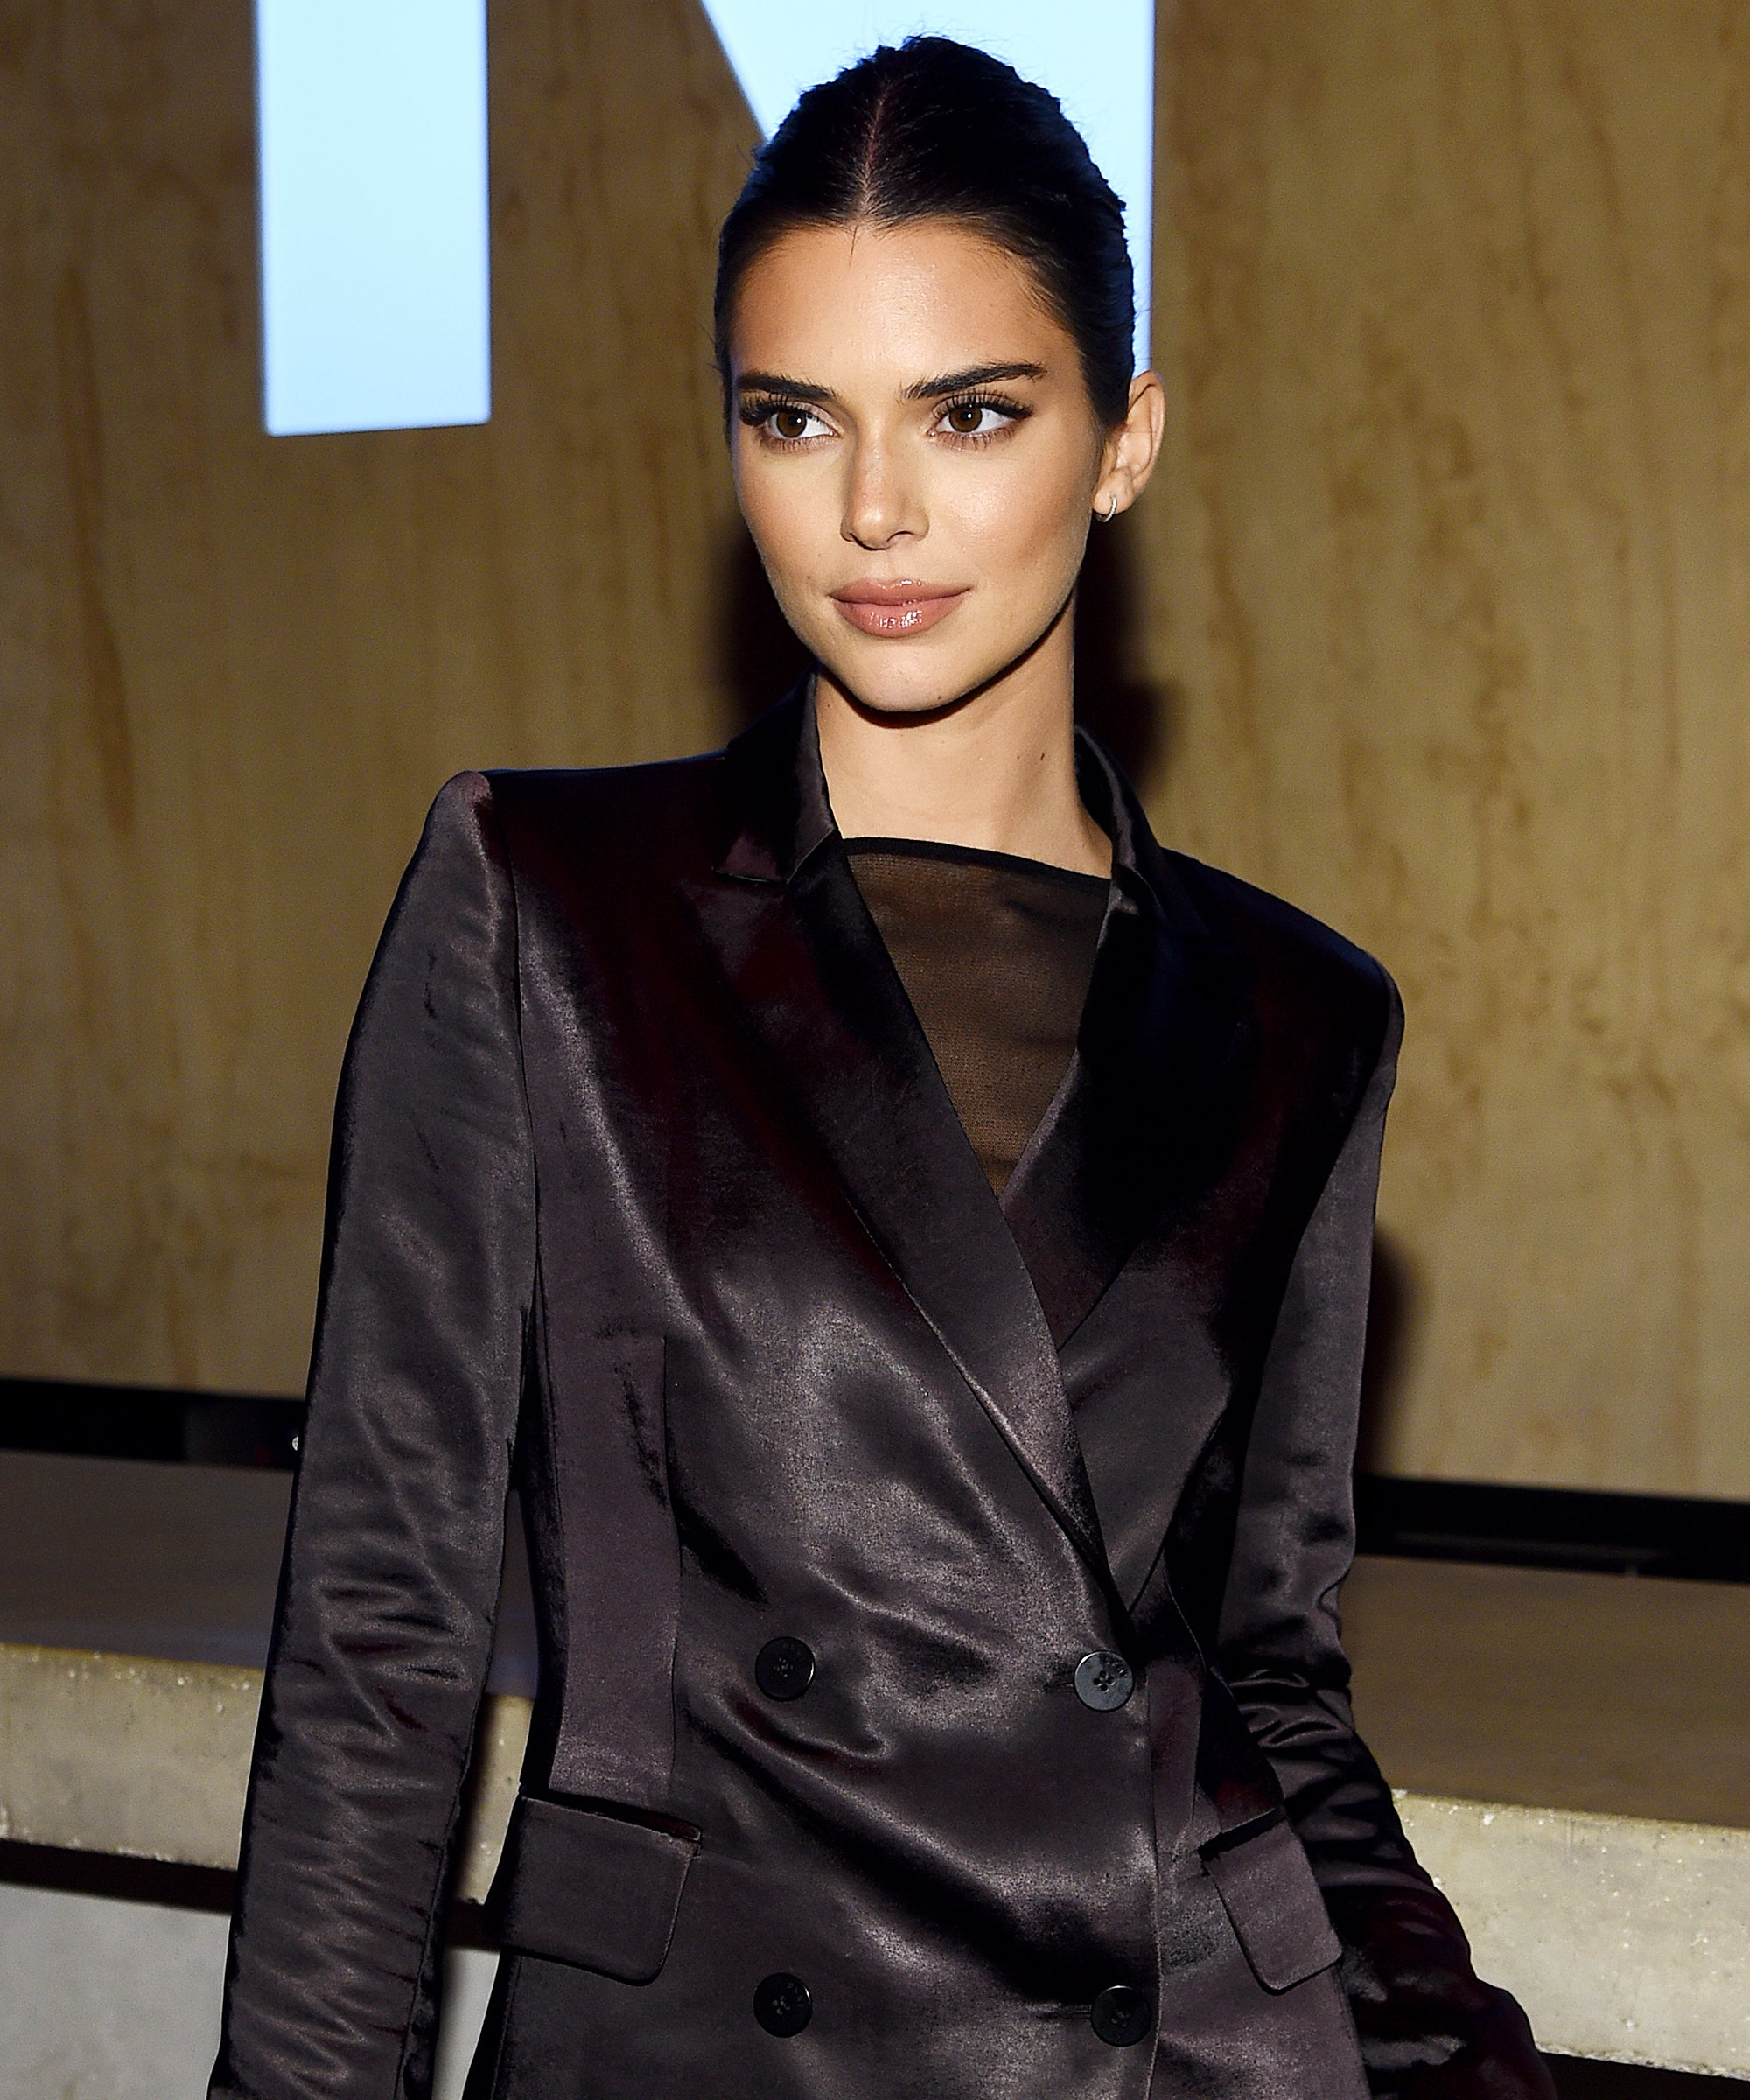 Postmates Revealed Kendall Jenner's Go-To Sweetgreen Order & It's Fire